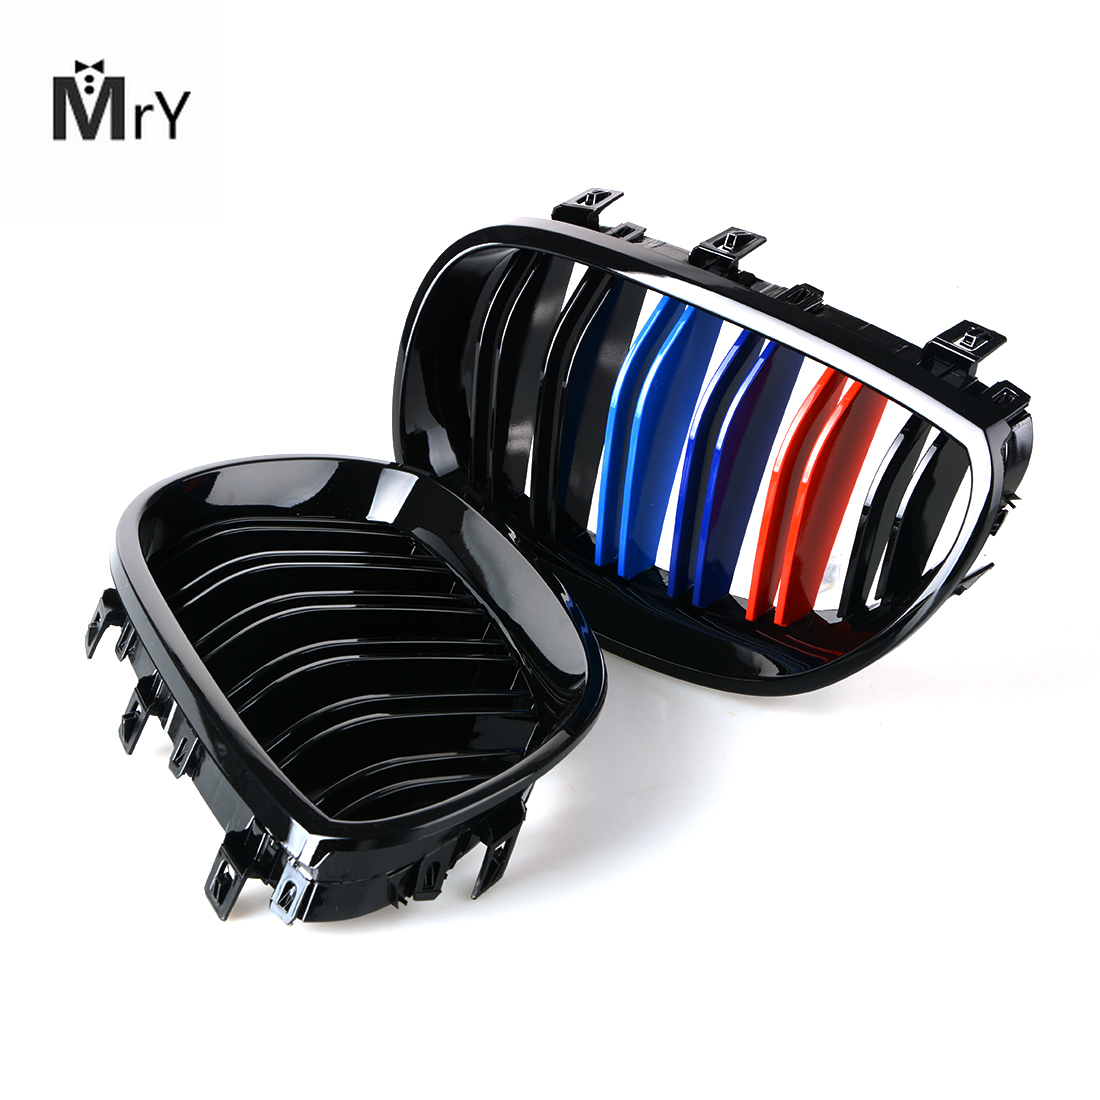 1 Pair Gloss 3 Color Carbon Fiber Black M5 Style Auto Car Styling Racing Grill Racing Grille For BMW 5 Series E60 E61 2003-2009